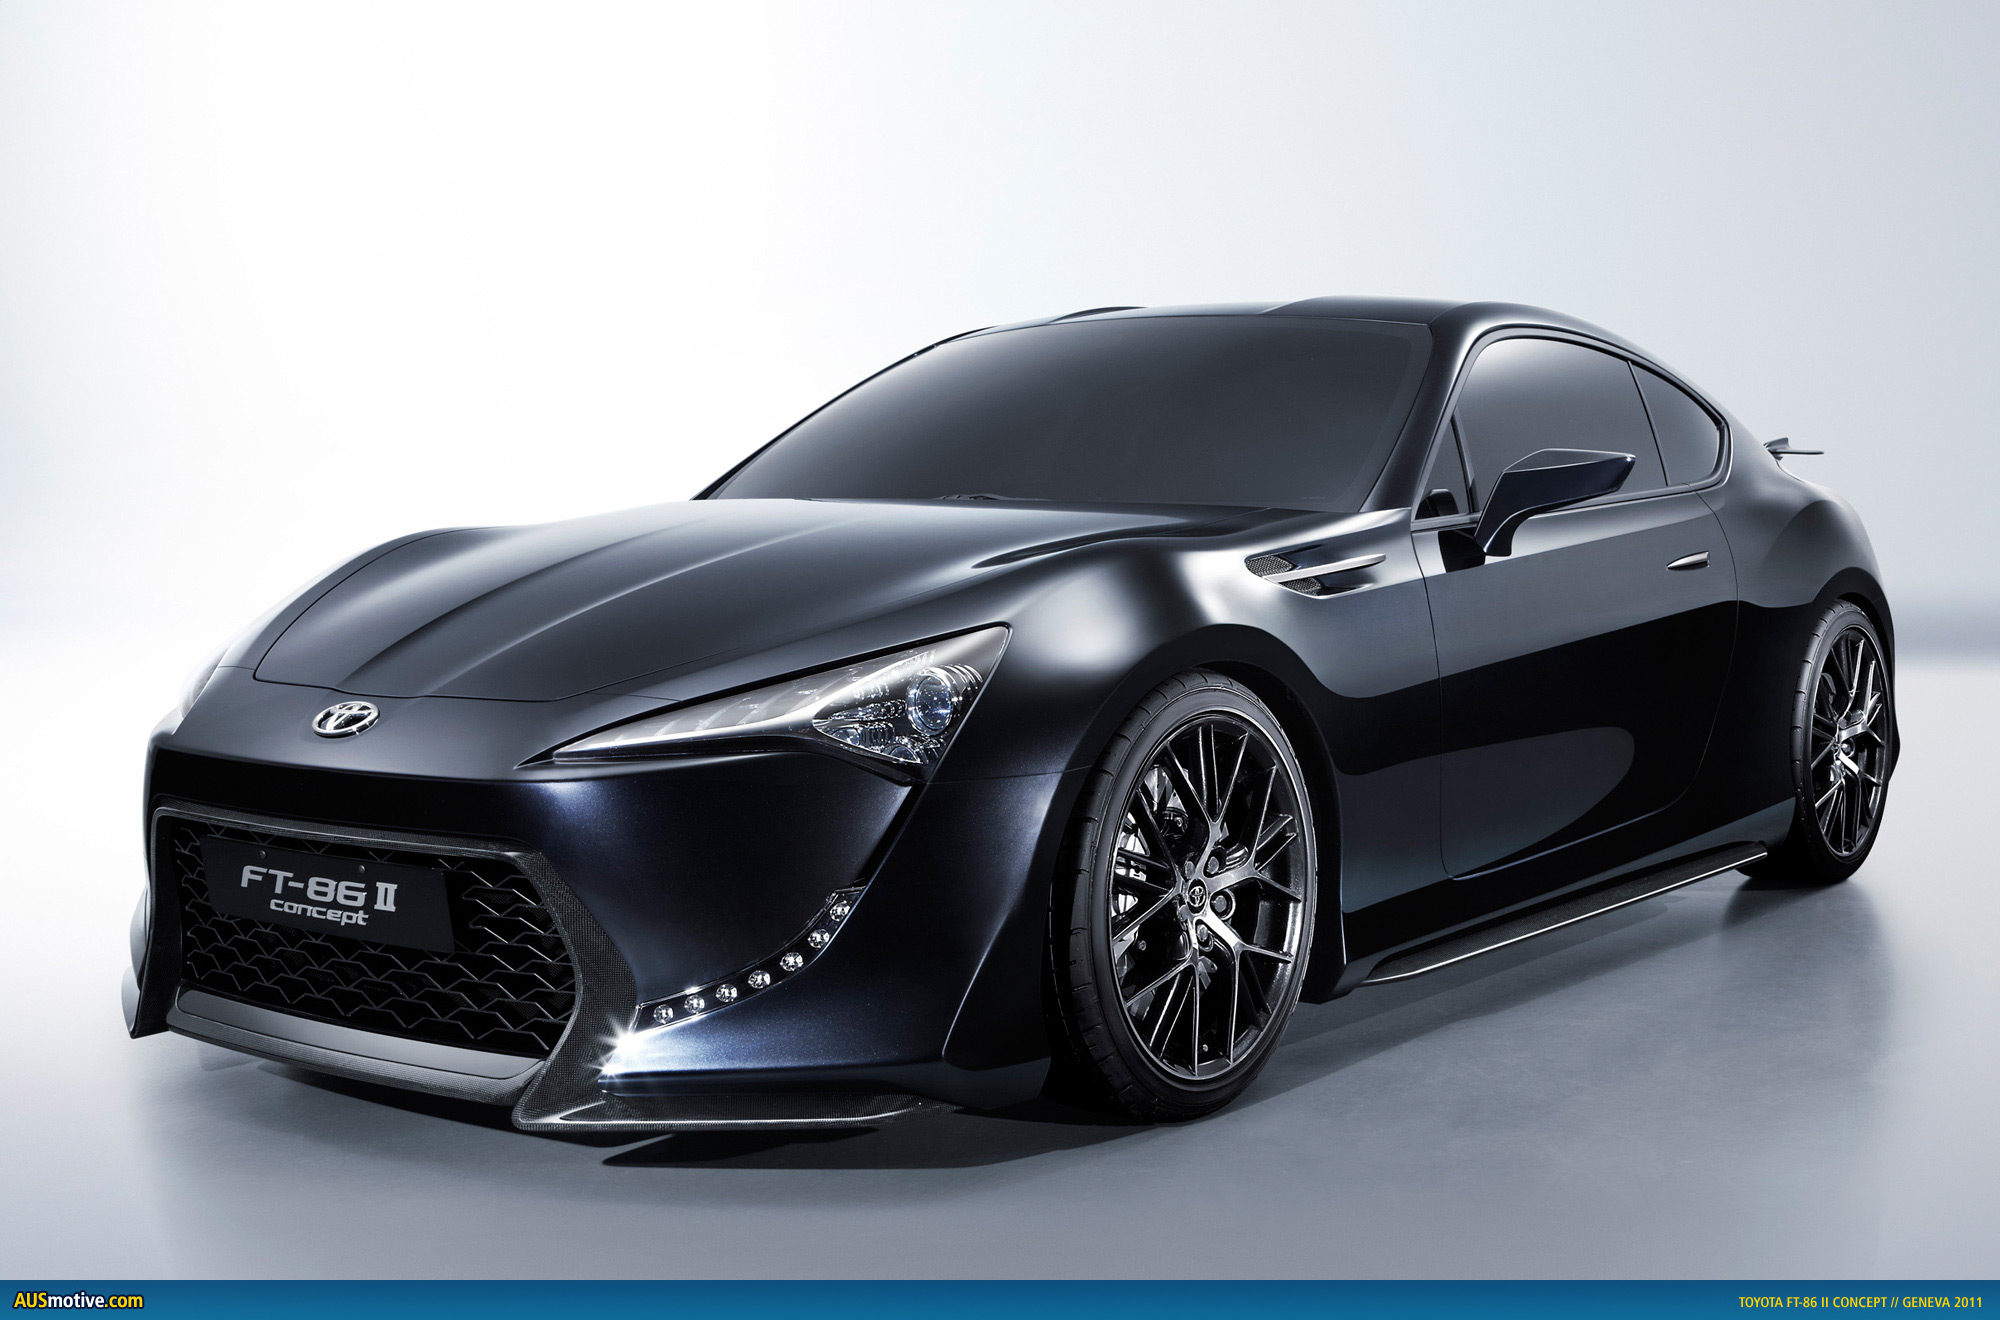 Toyota FT 86 II 0 in Motor Shows Toyota Free Download Image Of